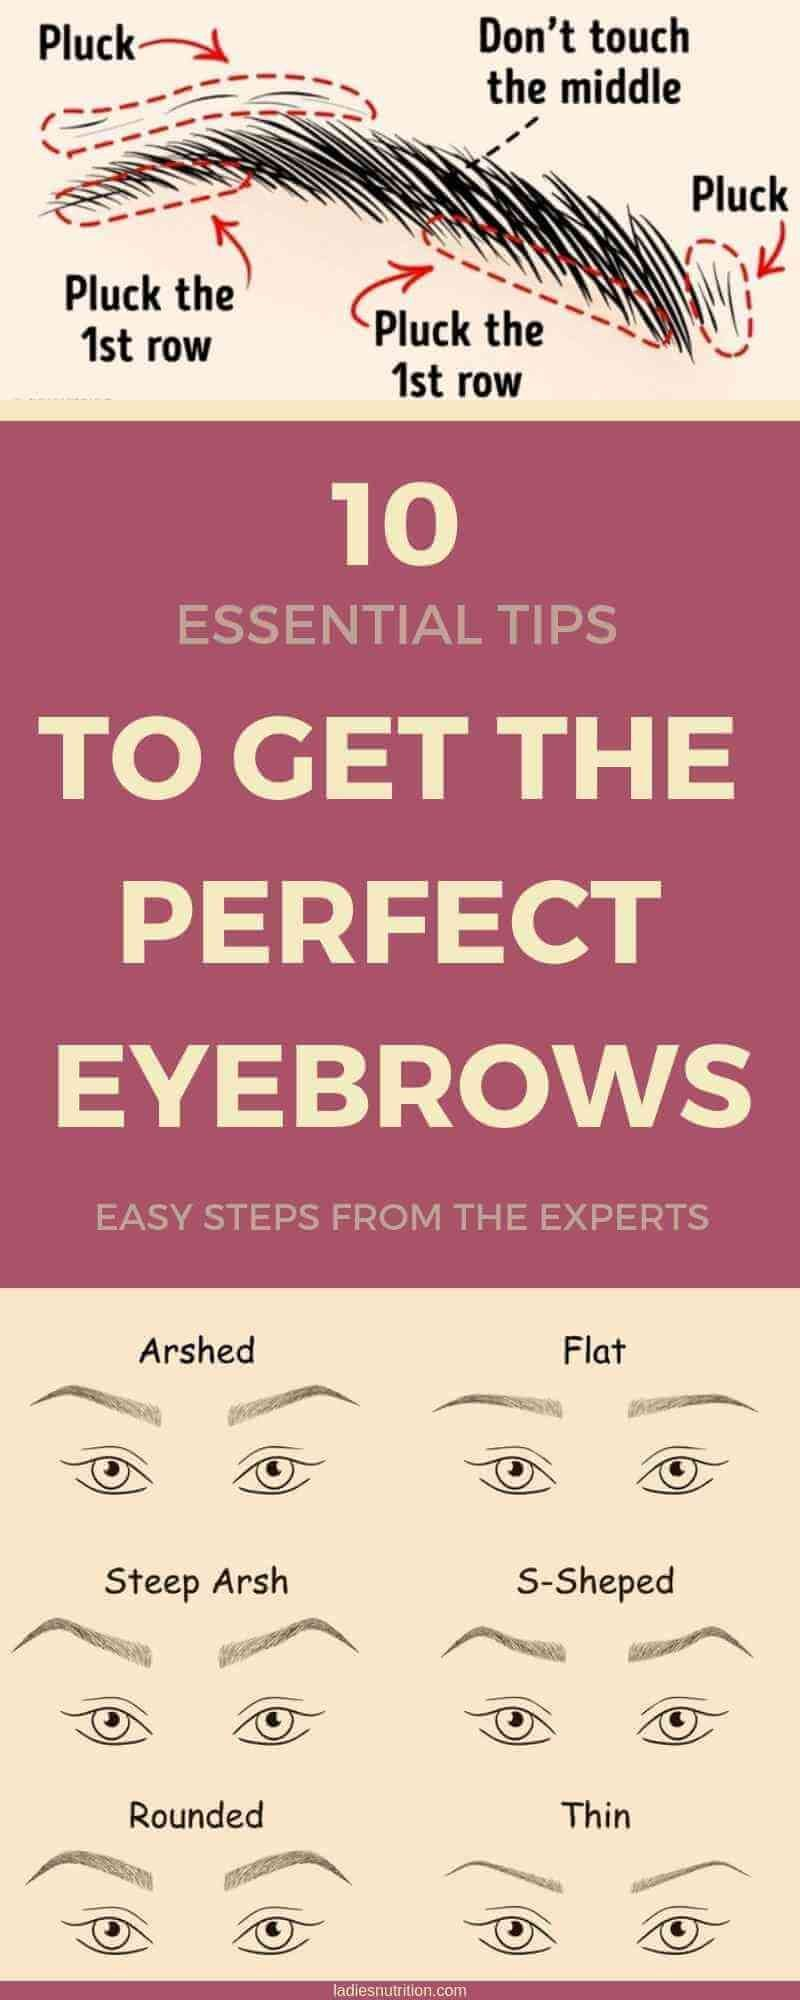 Photo of Essential Tips to Get the Perfect Eyebrows #naturaleyebrows